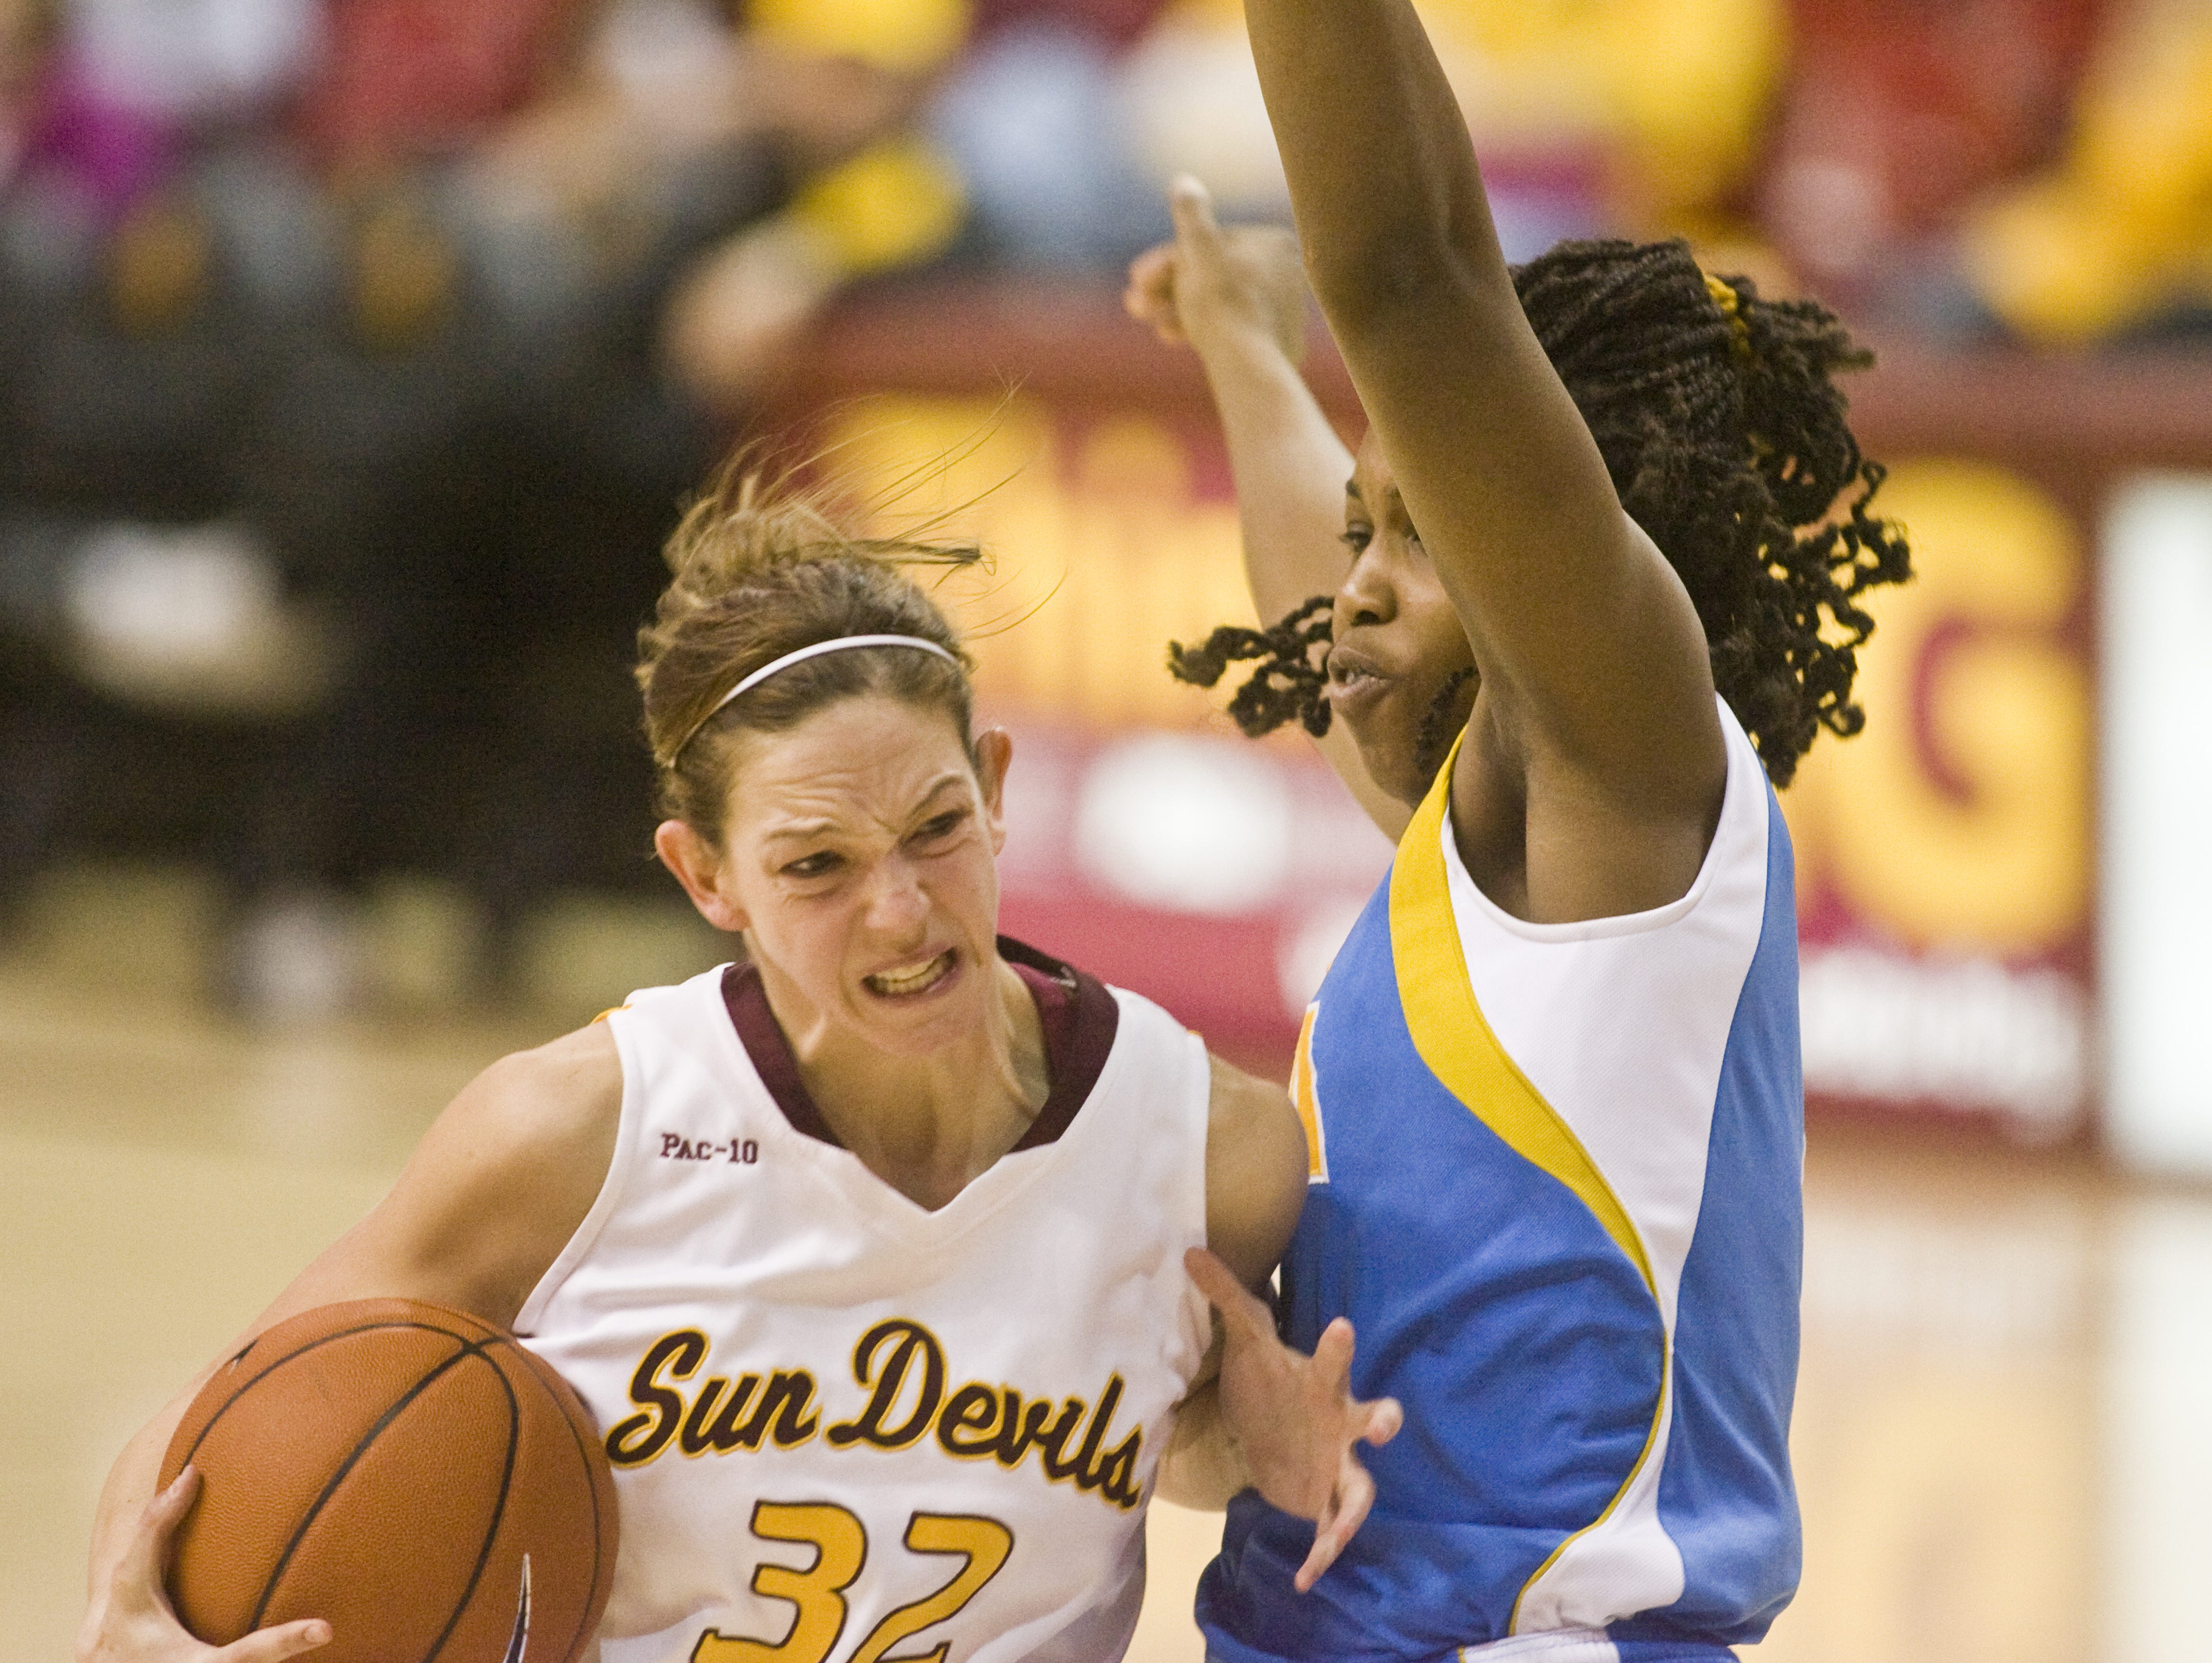 After ASU, Becca Tobin played for teams in several countries in Europe.